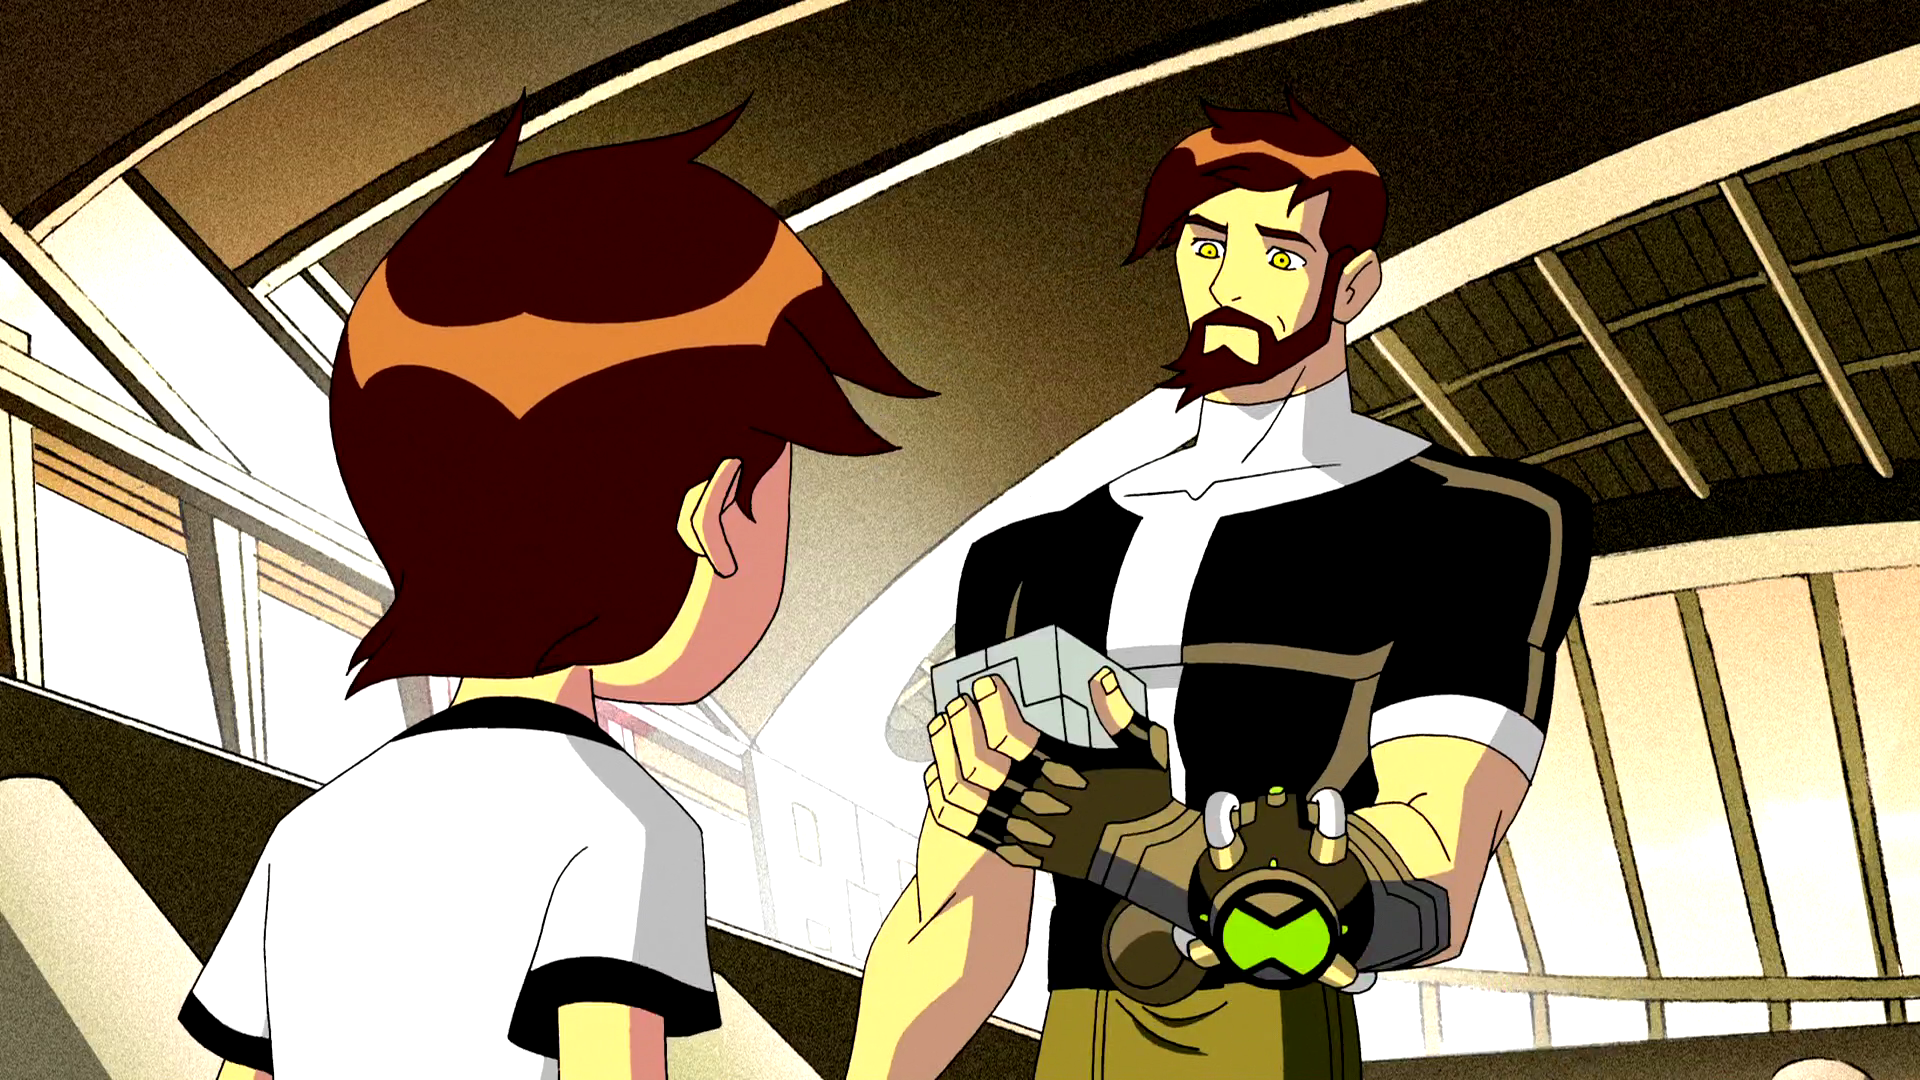 Ben 10 000 Of Ben 10 Ultimate Alien By Dlee1293847 On: Ben 10,000 With Cake.png